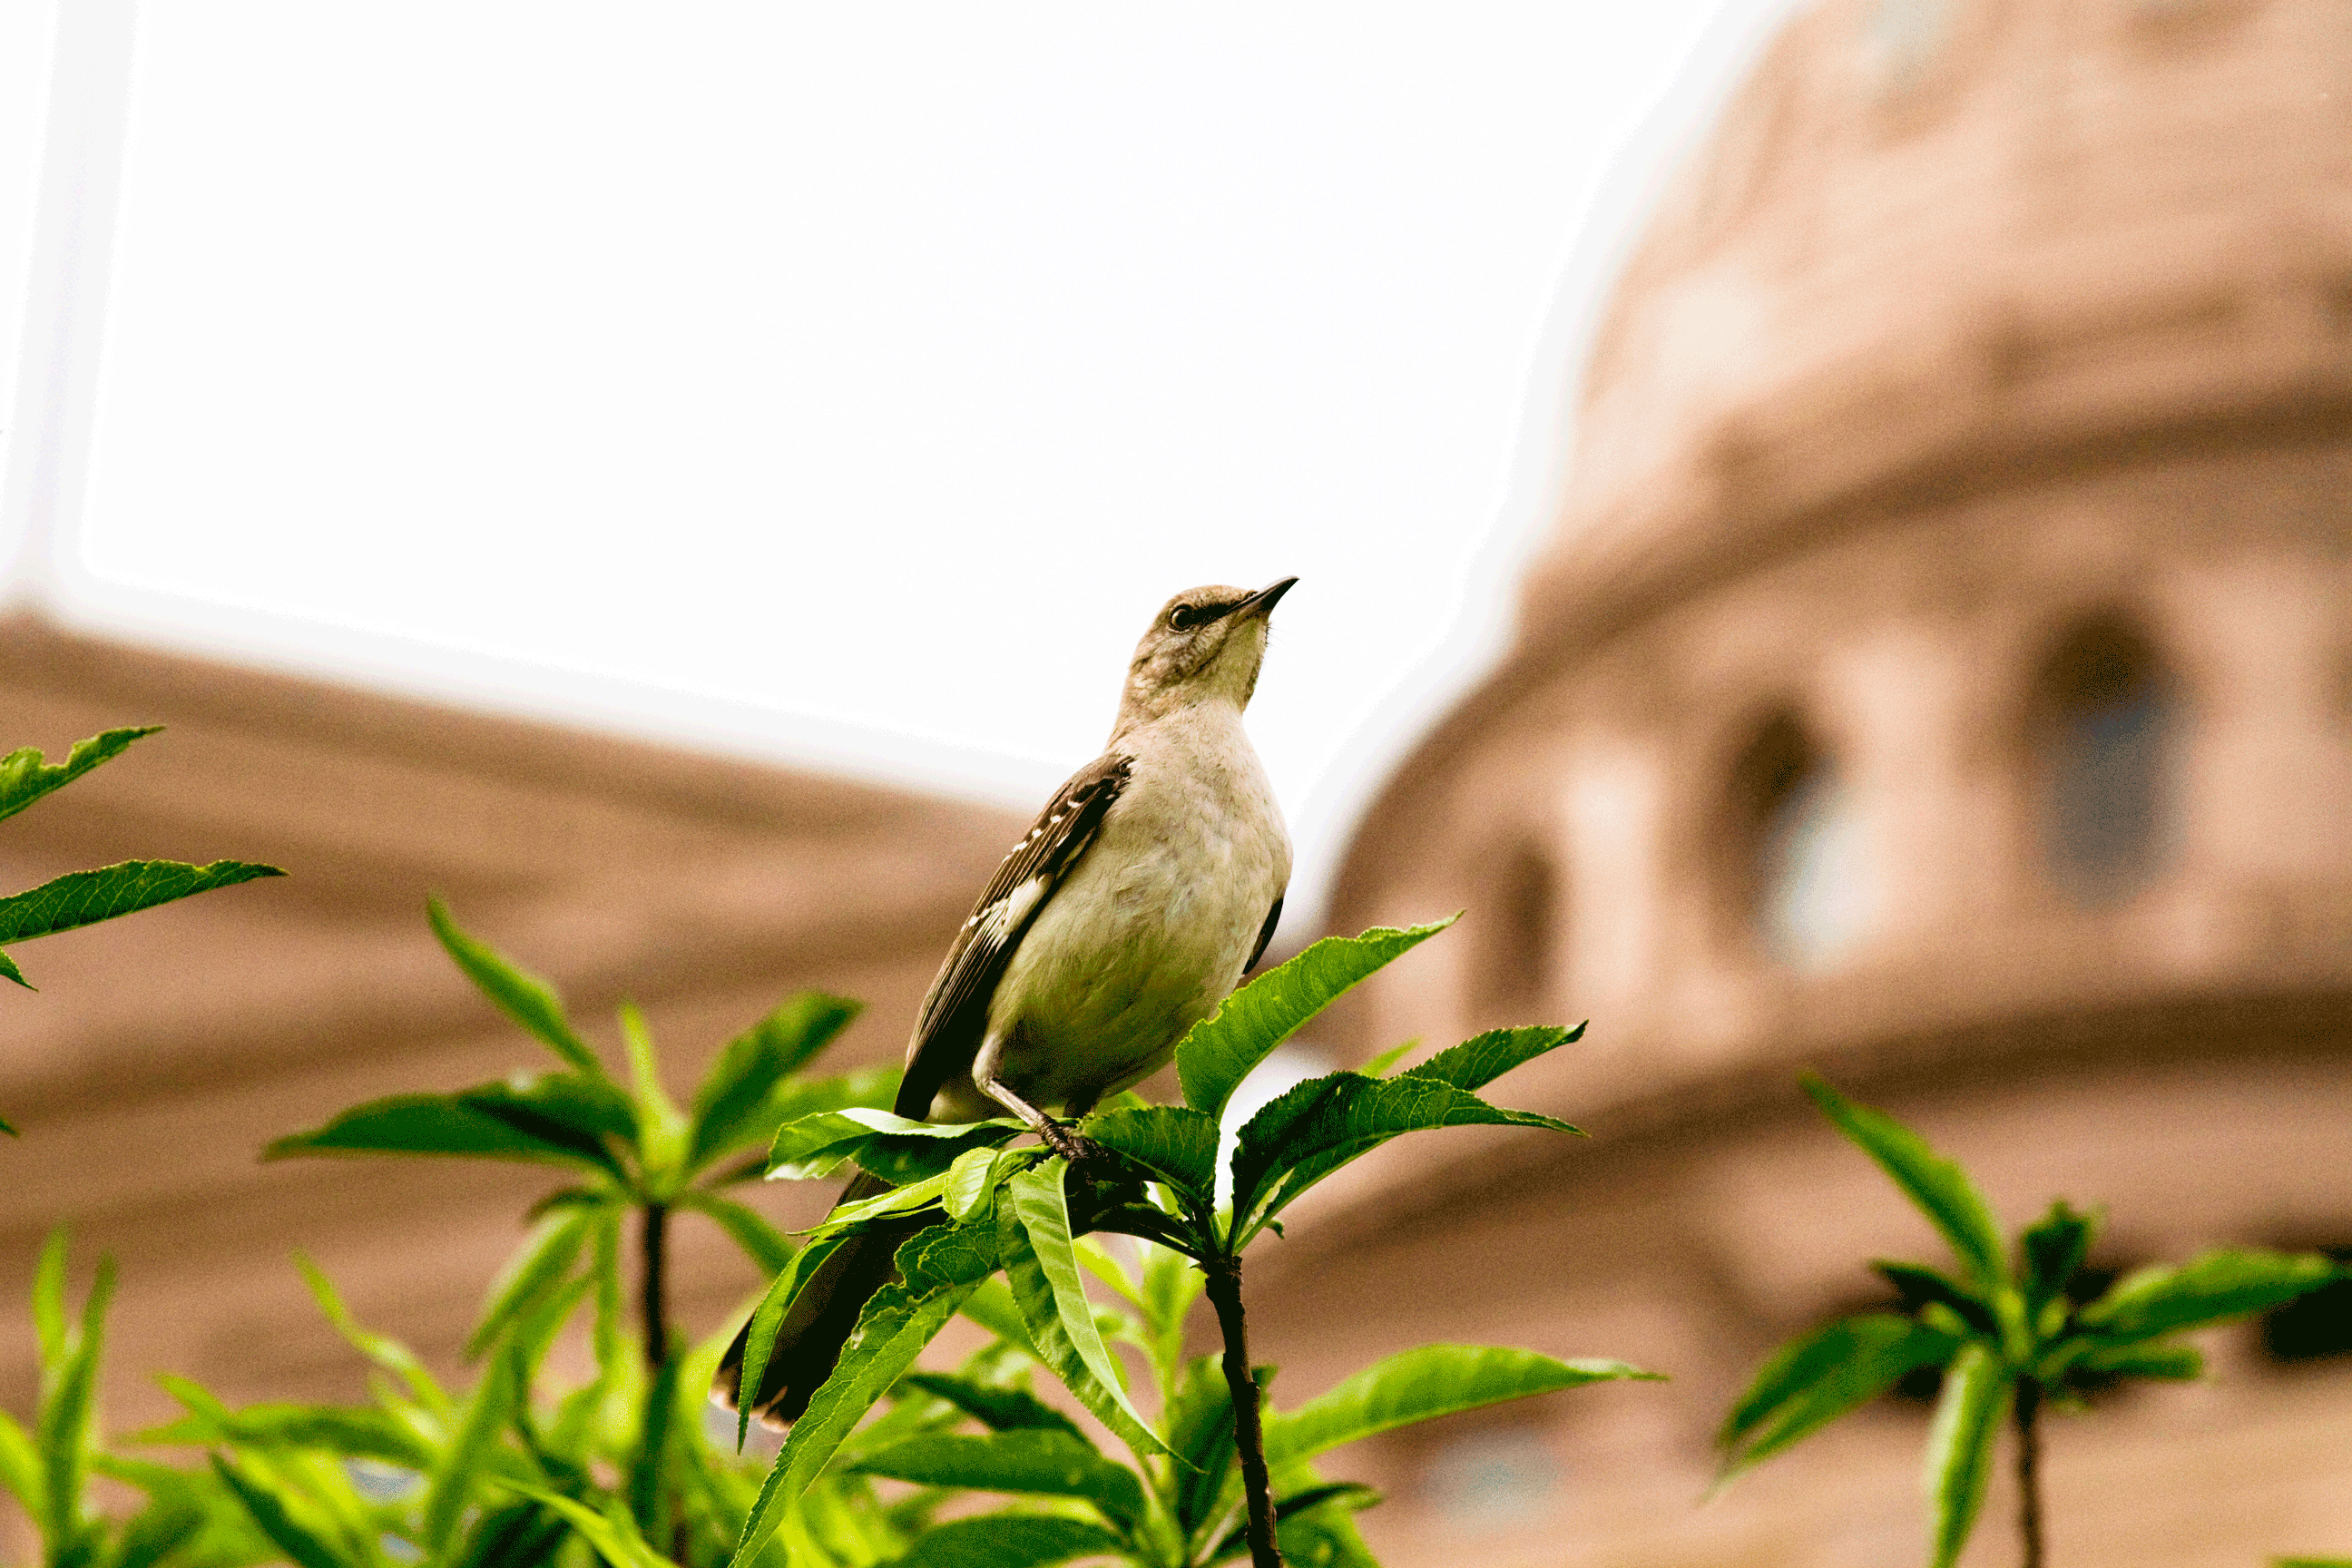 Picture of mockingbird perched on a branch with the capitol dome in the background